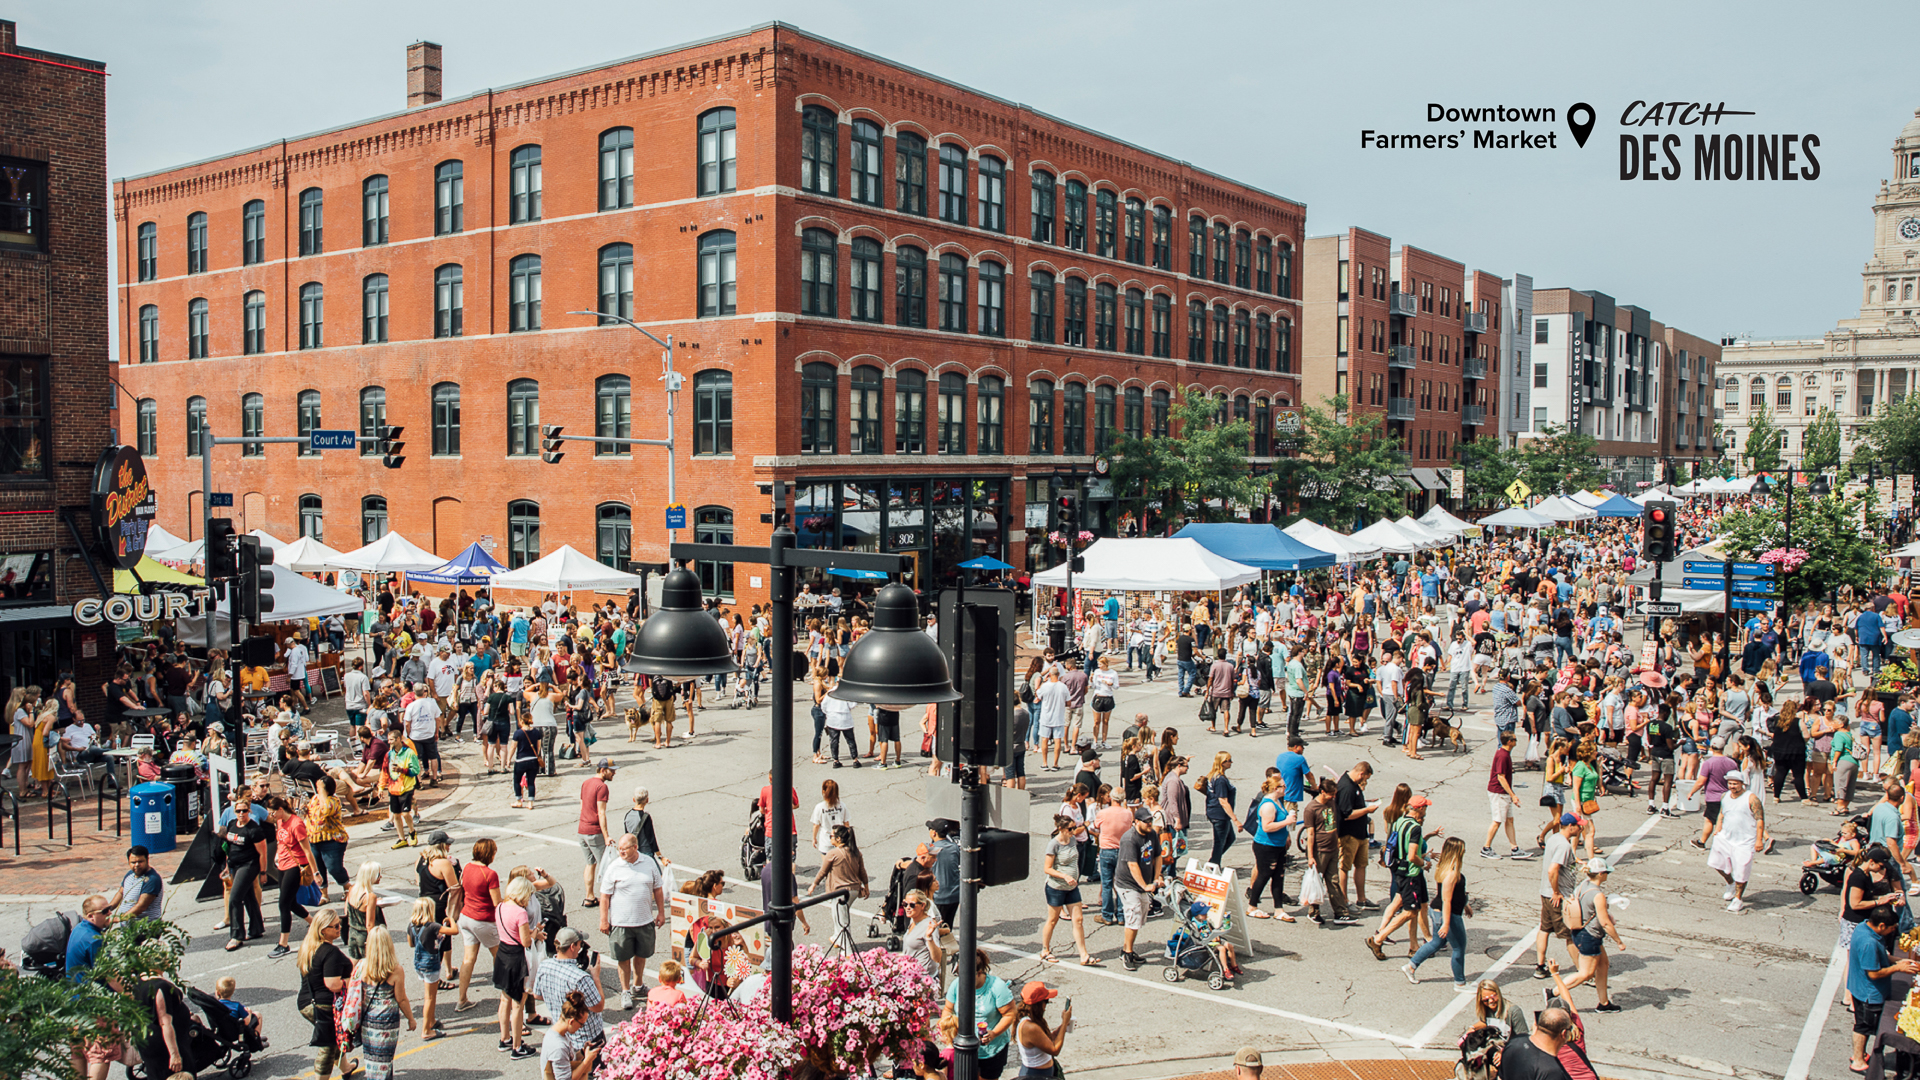 Areial View of Downtown Farmers' Market Zoom Background